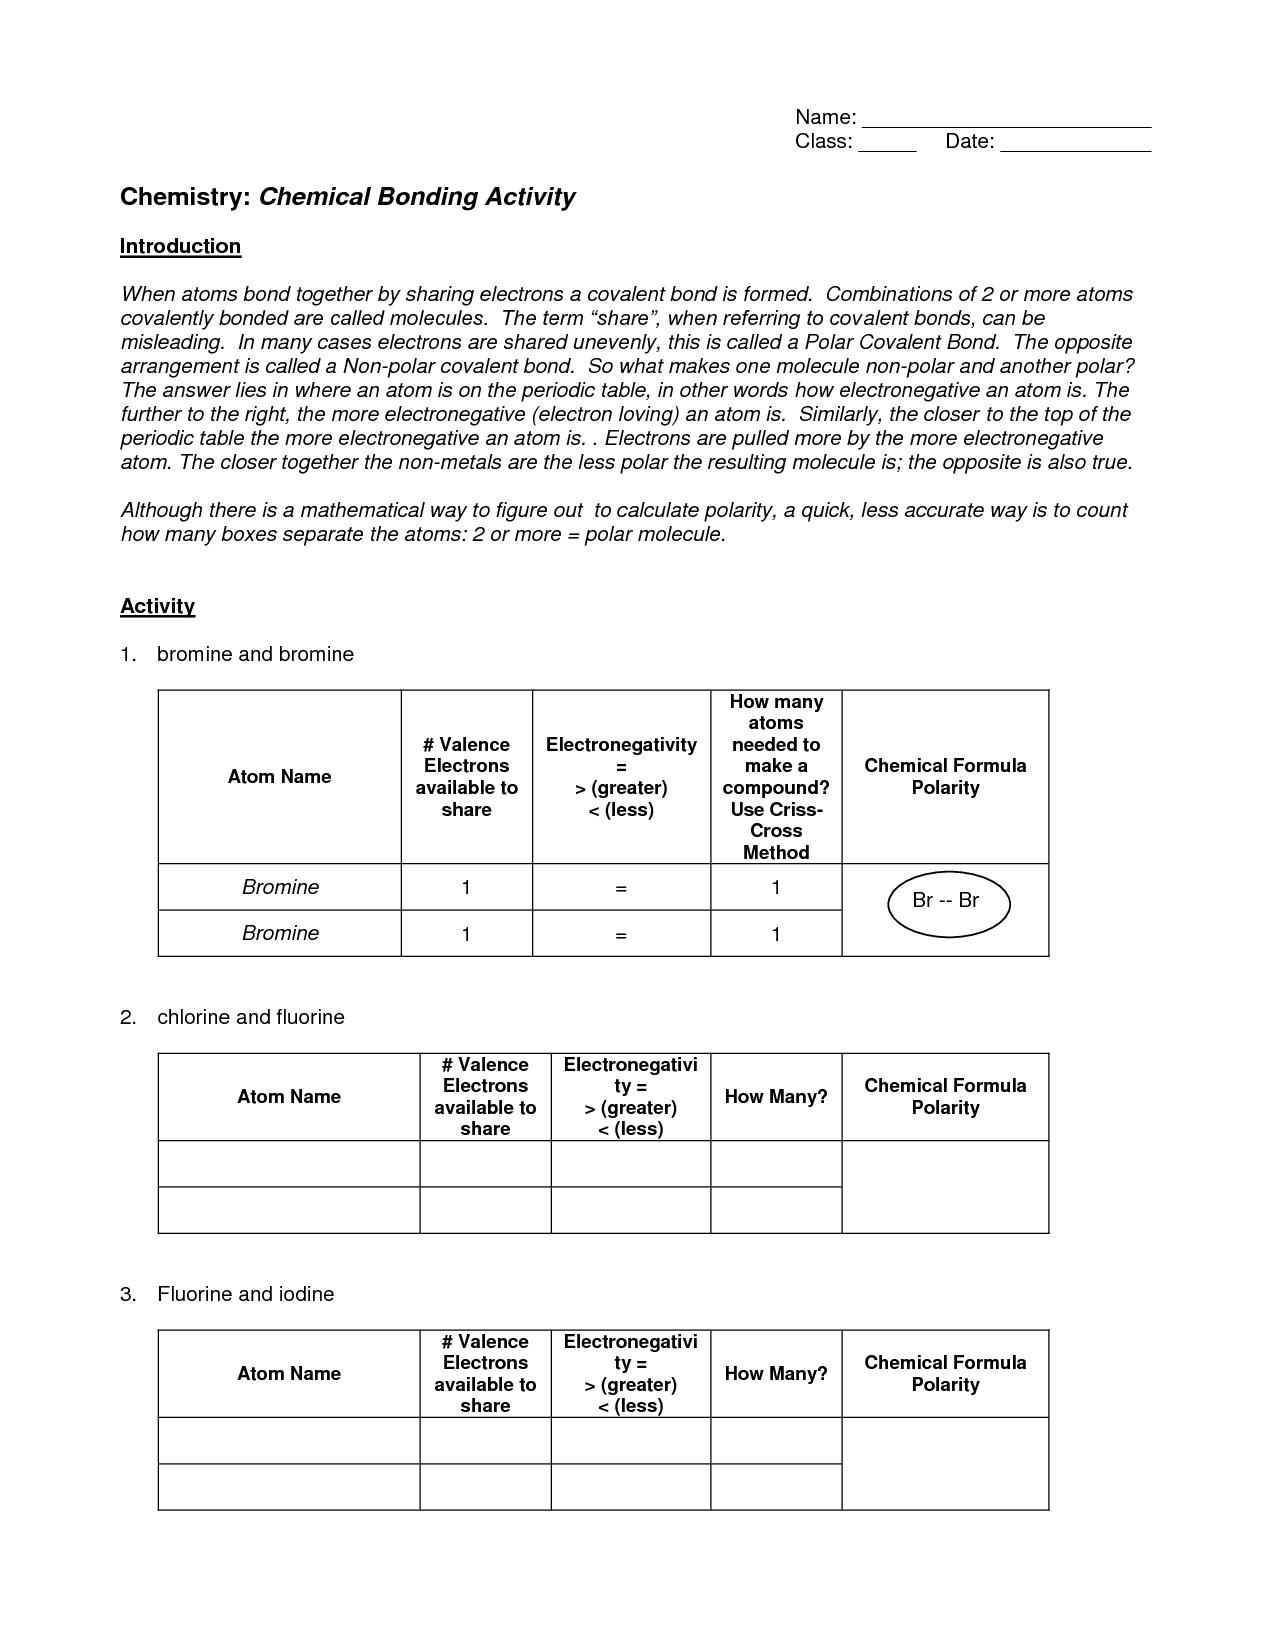 16 Best Images of Ionic Bonding Worksheet Answer Key  Chemistry Chemical Bonding Worksheet